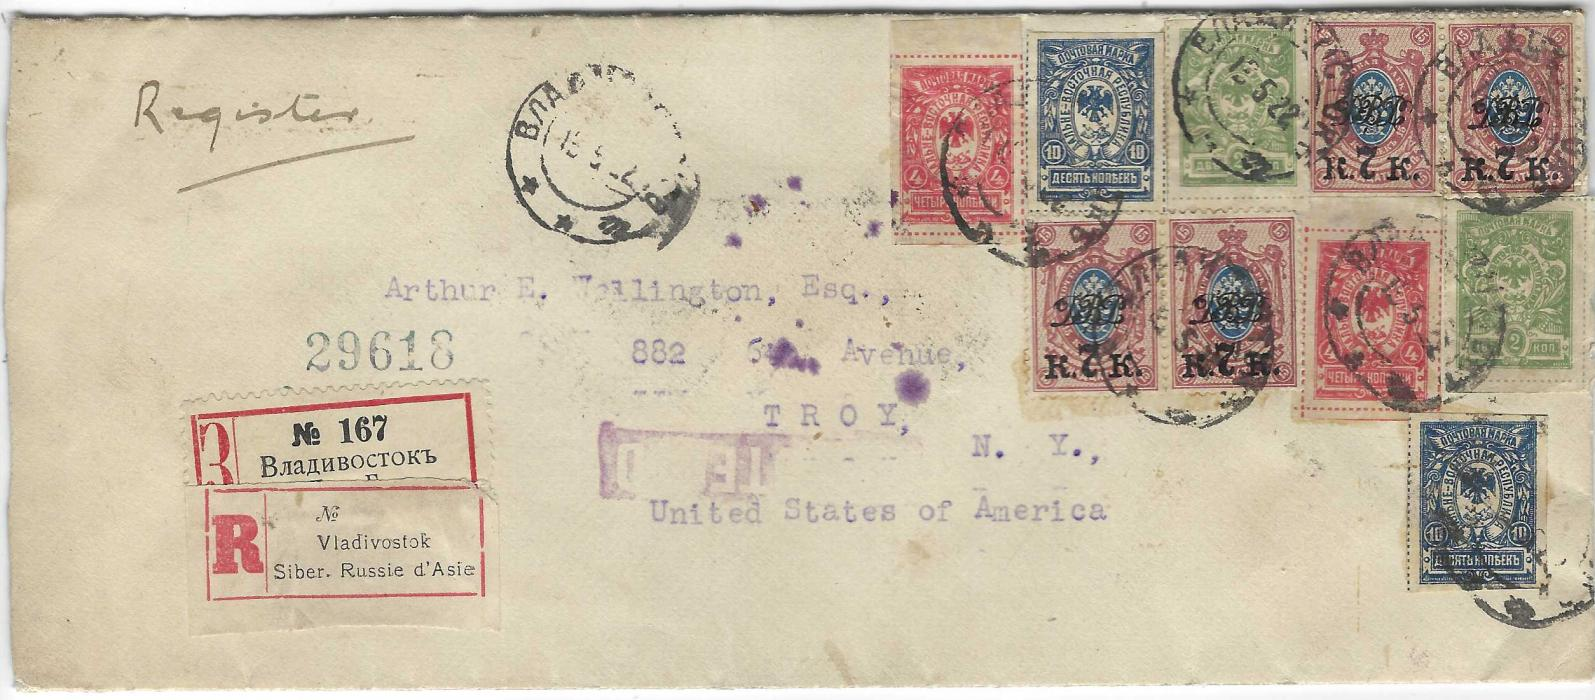 Russia (Priamur and Maritime Provinces) 1922 (13.5.) registered cover to Troy, N.Y., USA franked 1921 unoverprinted 2k. (2), 4k. (2) and 10k. (2) plus Far Eastern Republics 1920-21 perf 7k. on 15k. (4), Vladivostok despatch cancels and both Cyrillic and English registration labels, reverse with Seattle transit and arrival cancel. Ex Dick Scheper.